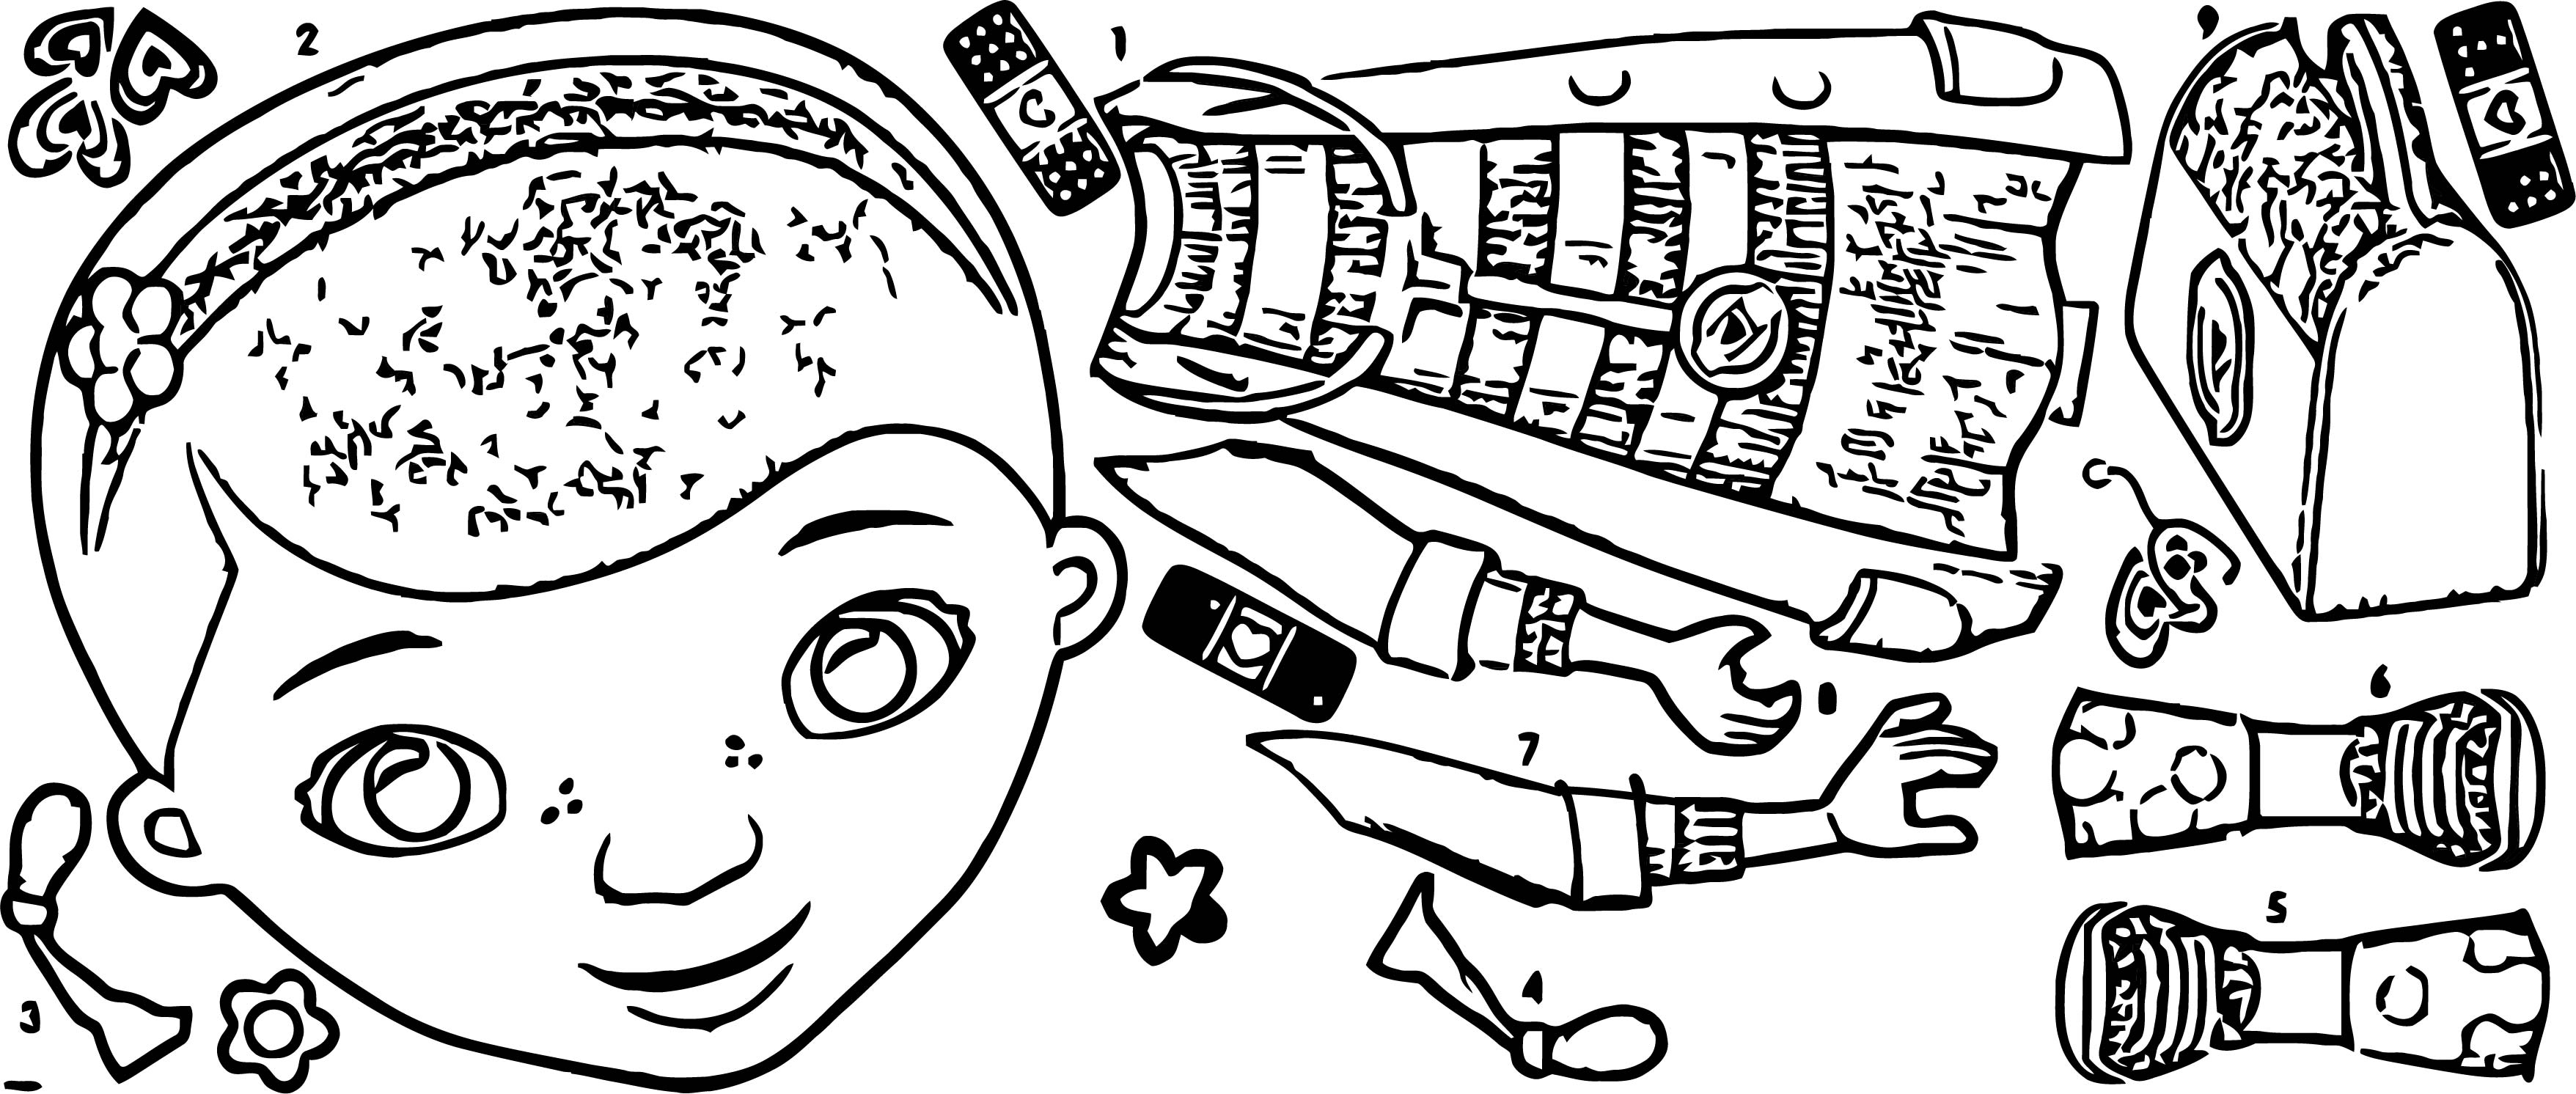 Doc McStuffins Giant Wall Decal Product Cartoonized Coloring Page